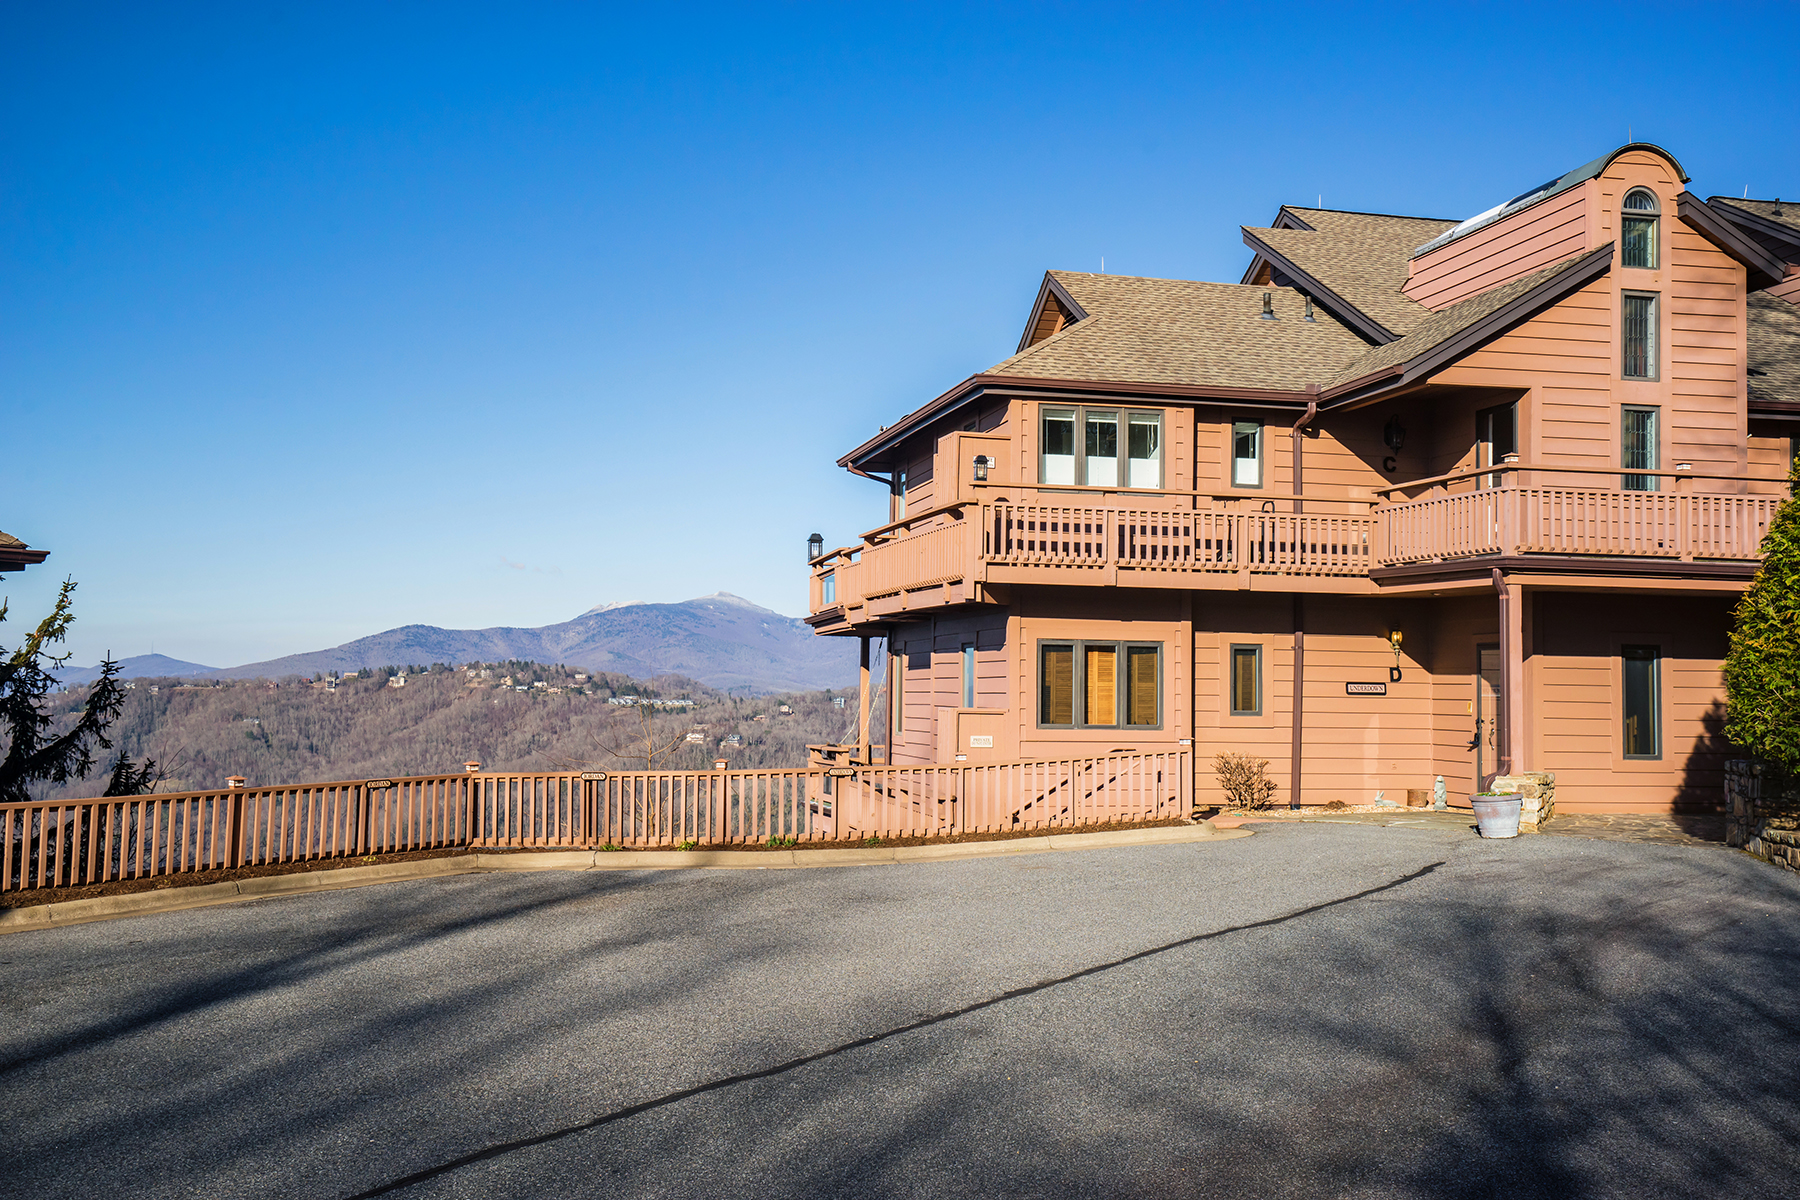 Condominium for Sale at BLOWING ROCK - MAYVIEW MANOR I 1073 Wonderland Trl D, Blowing Rock, North Carolina 28605 United States